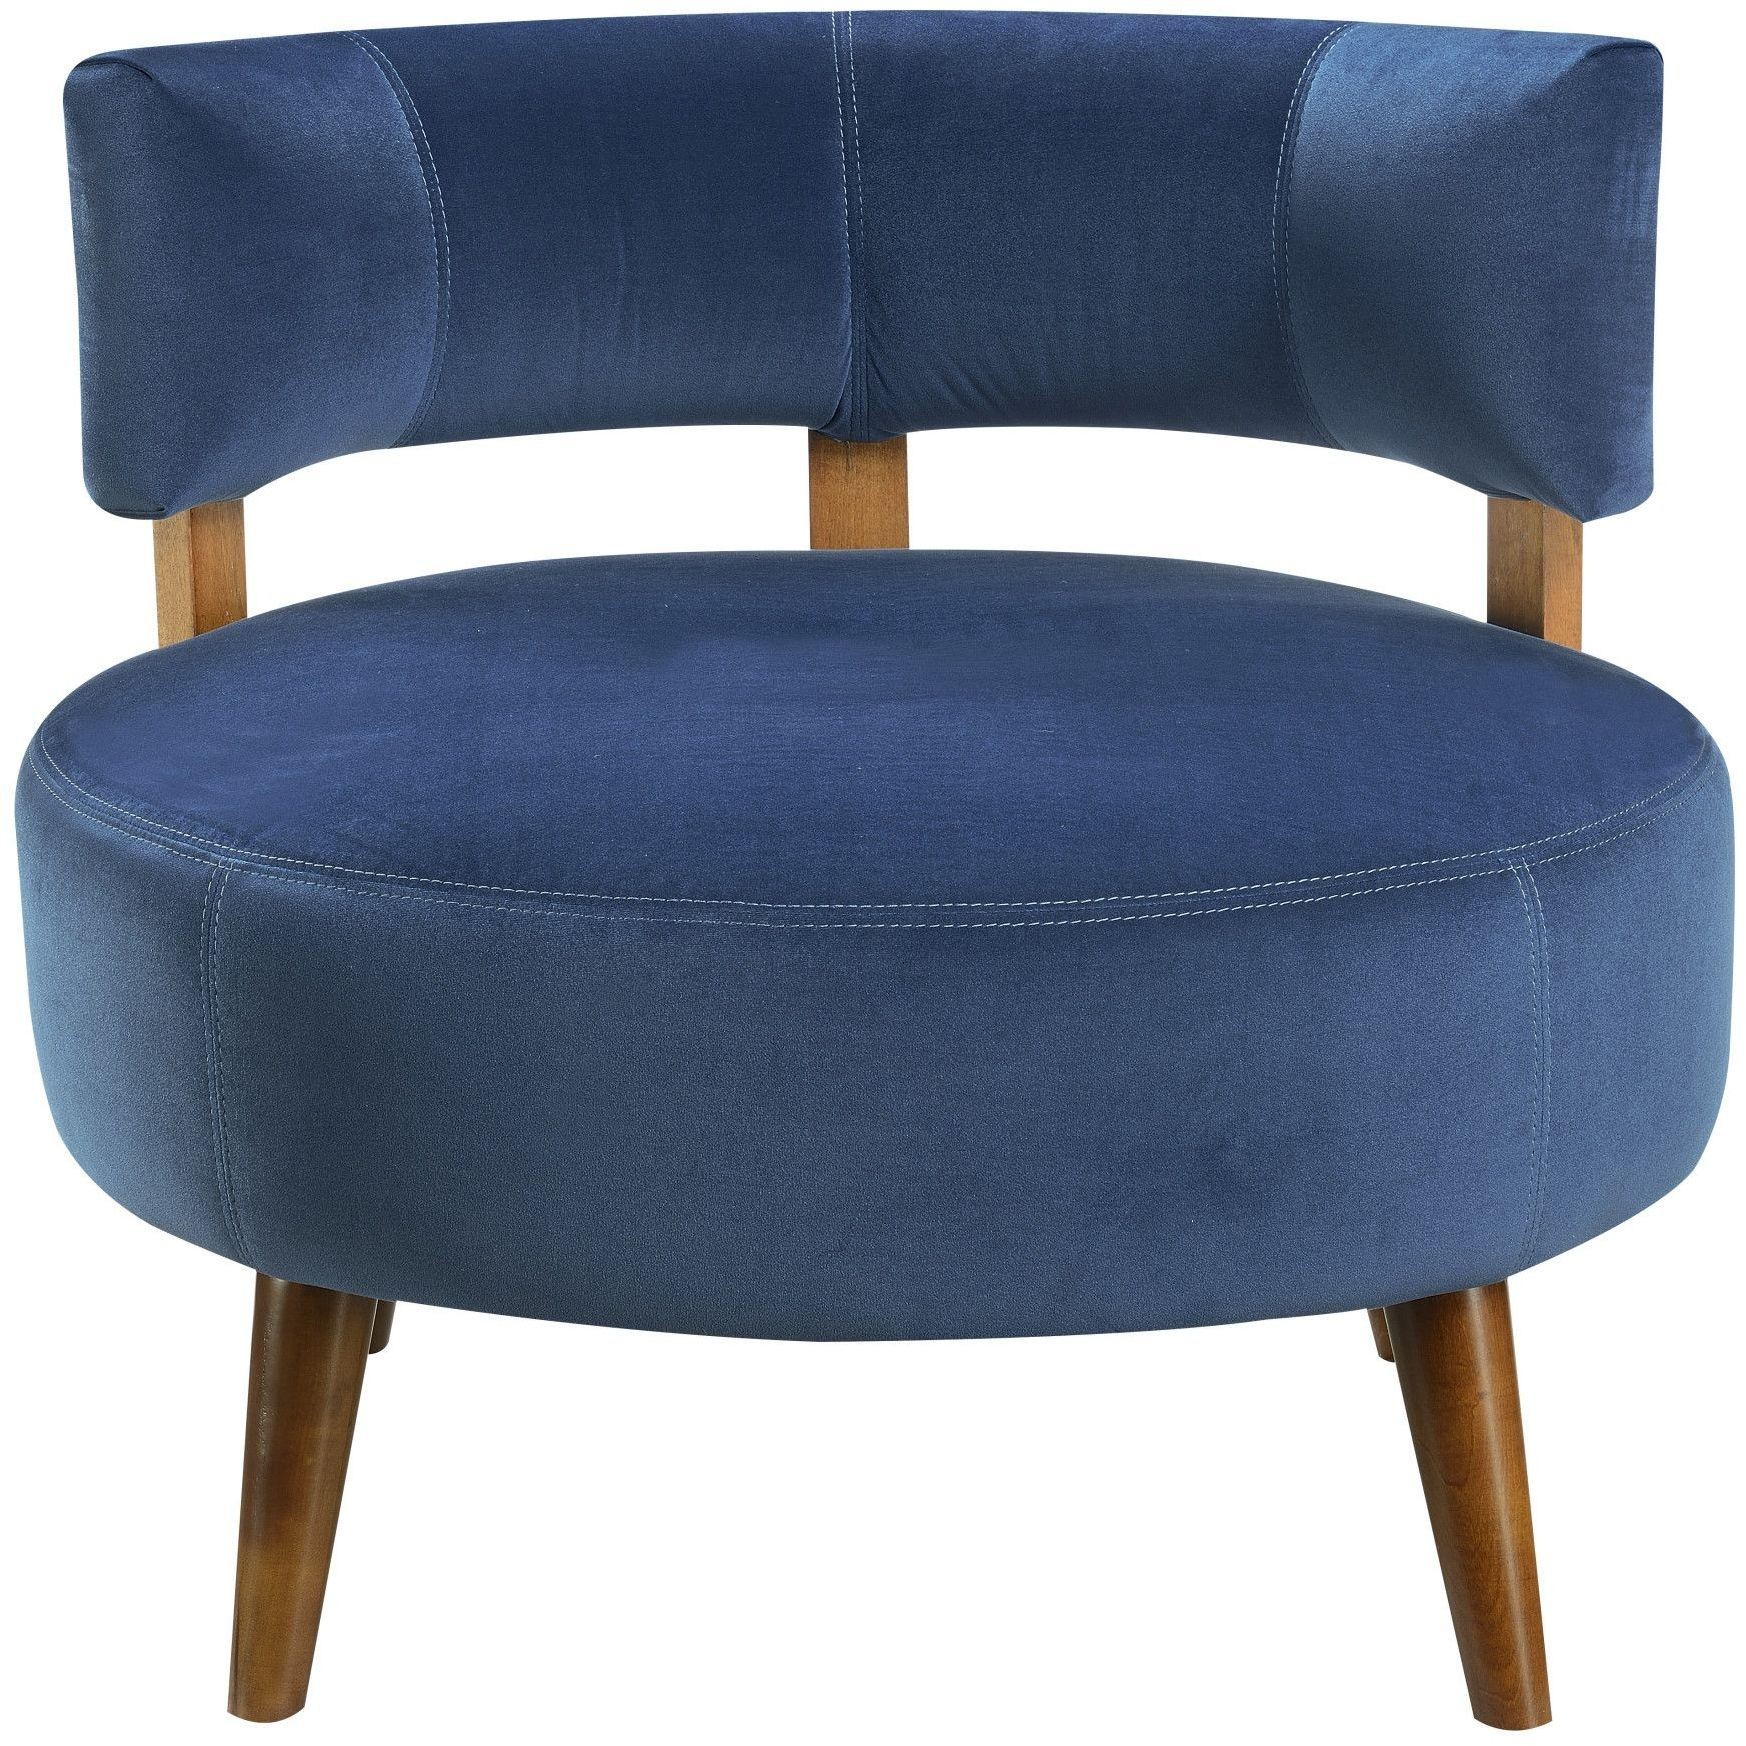 Sphere Teal Accent Chair from Emerald Home